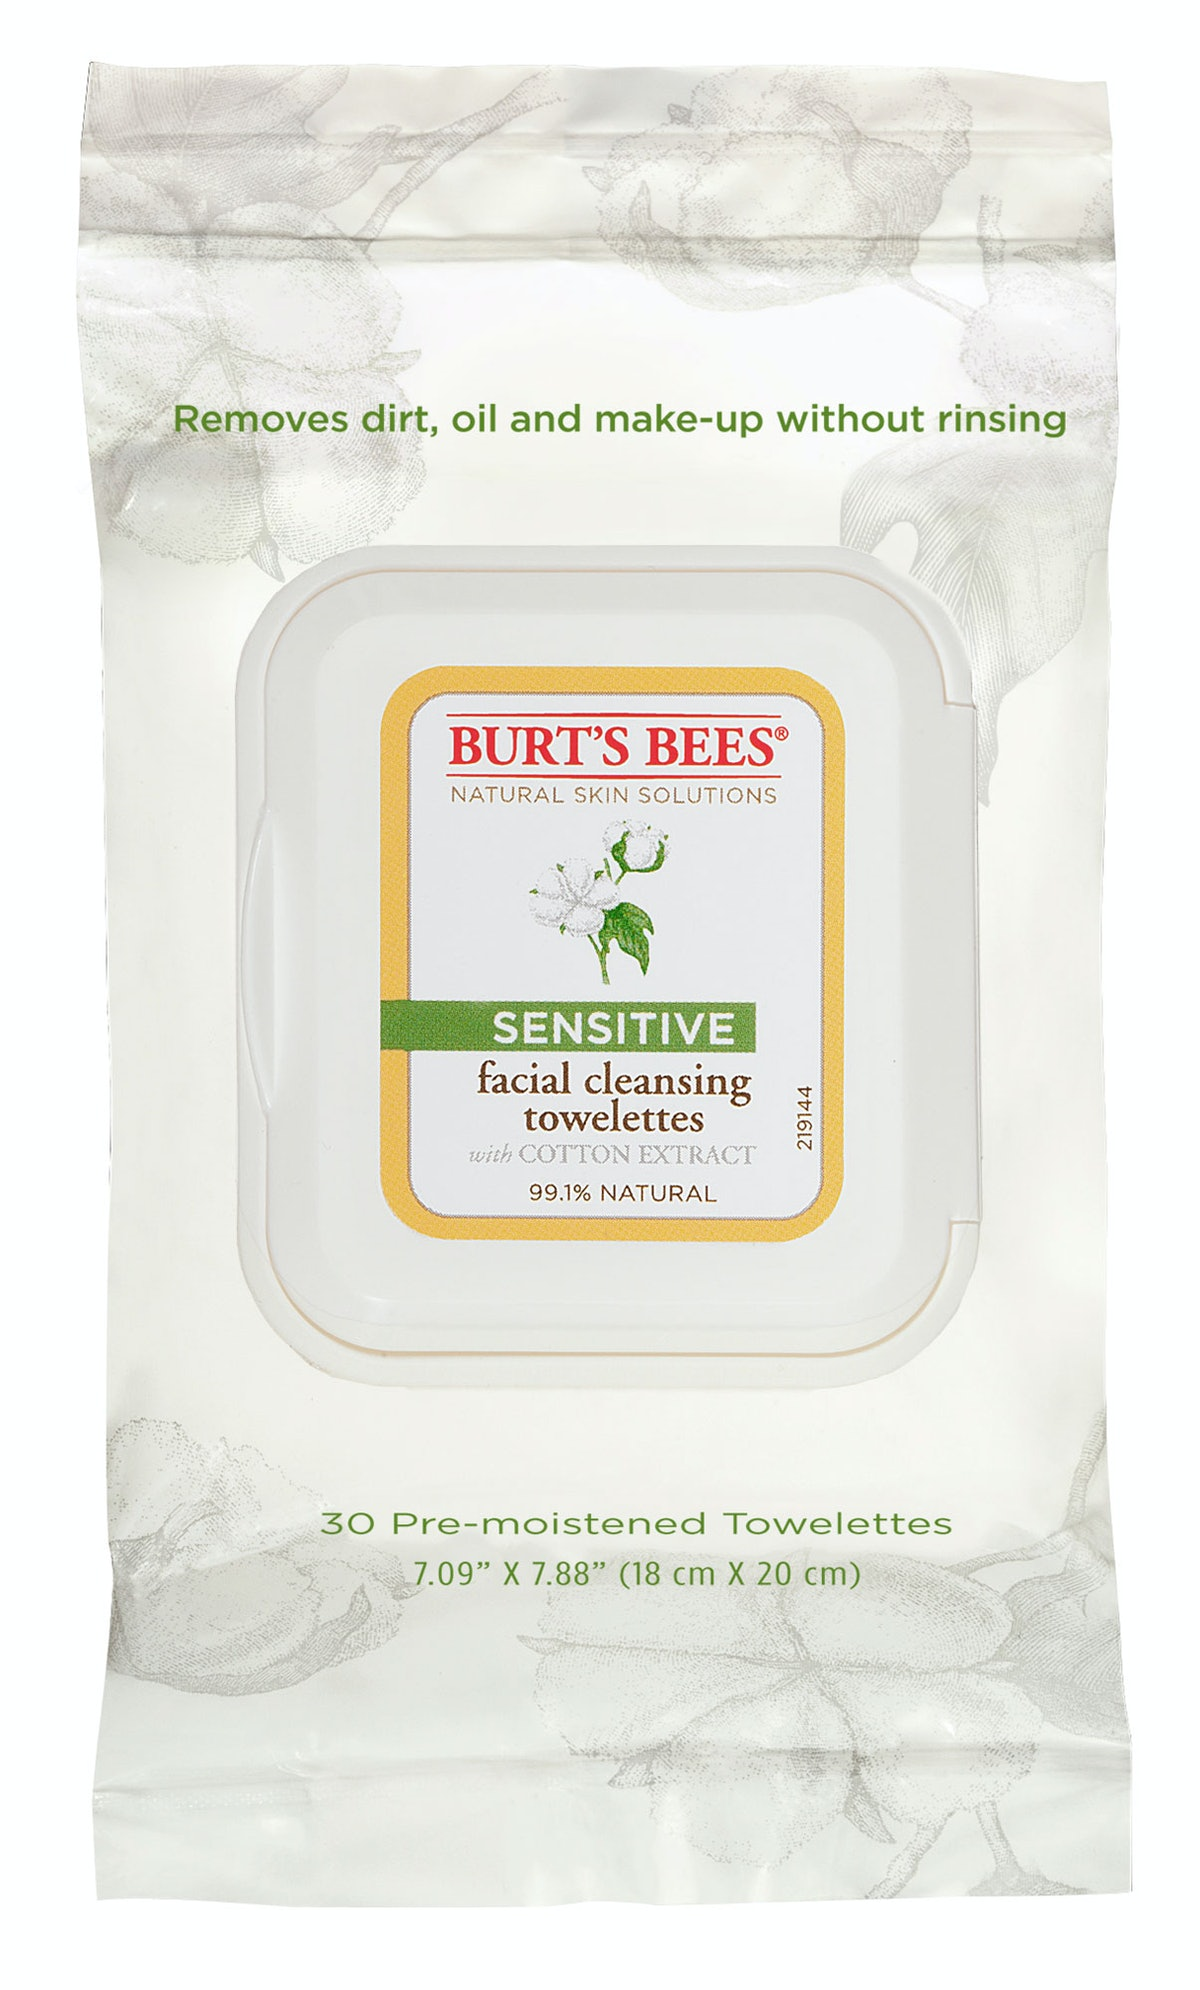 __Sensitive Skin Cleanser:__ Burt's Bees Sensitive Facial Cleansing Towelettes with Cotton Extract, ...